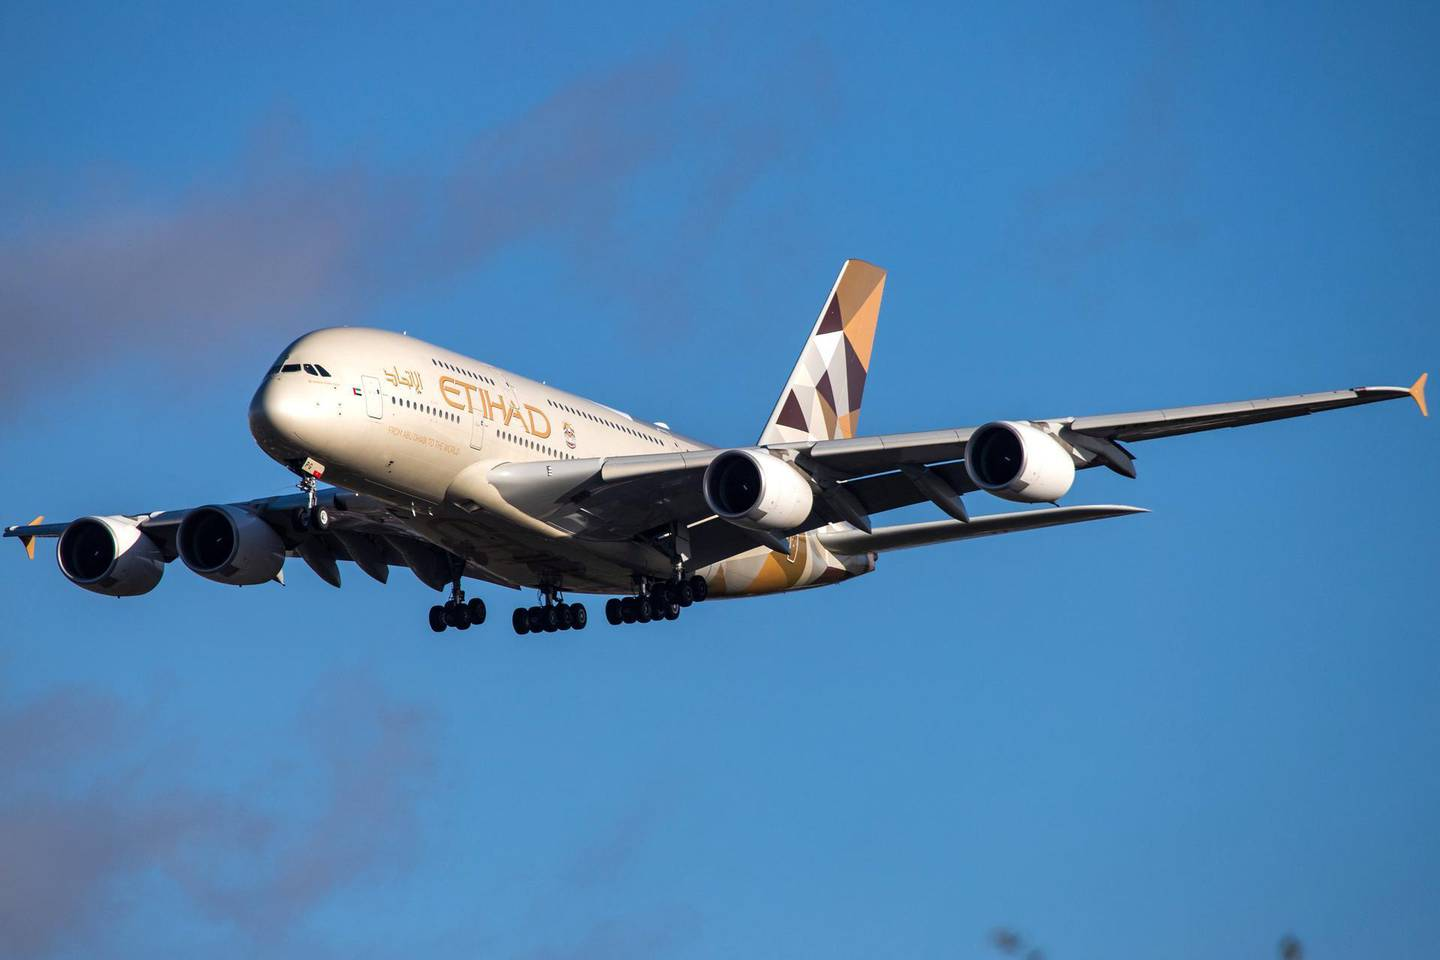 Etihad Airways Airbus A380 with registration A6-APG landing in London Heathrow International Airport in England during a nice day. Etihad or EY is based at Abu Dhabi International Airport in United Arab Emirates and is the flag carrier of UAE. The airline connects daily Abu Dhabi Airport AUH / OMAA to London Heathrow LHR / EGLL. Airbus A380-800 double decker airplane is currently the largest airplane in the world. (Photo by Nicolas Economou/NurPhoto via Getty Images)